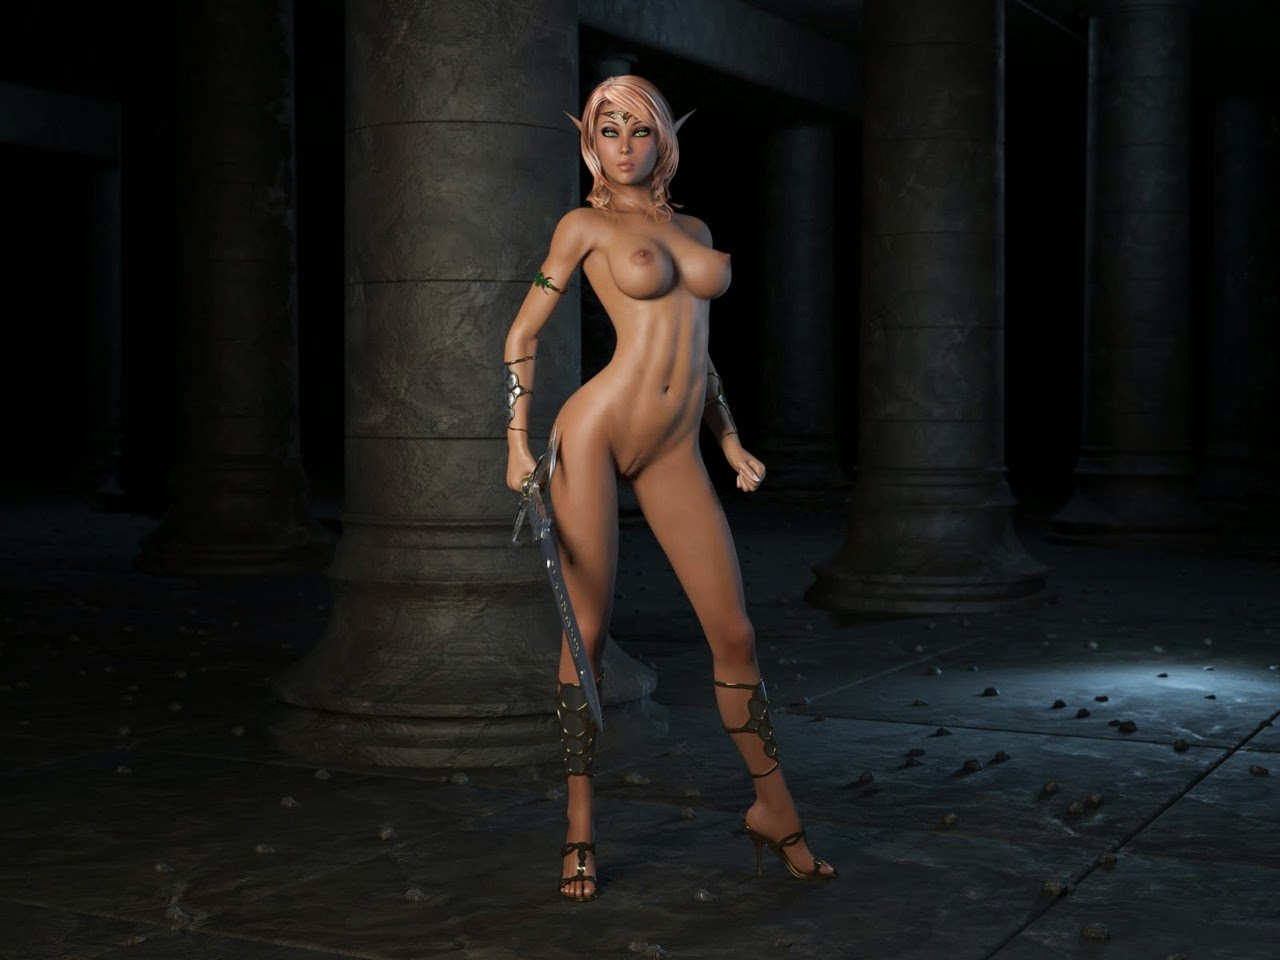 3d erotic fantasy art nudes xxx download